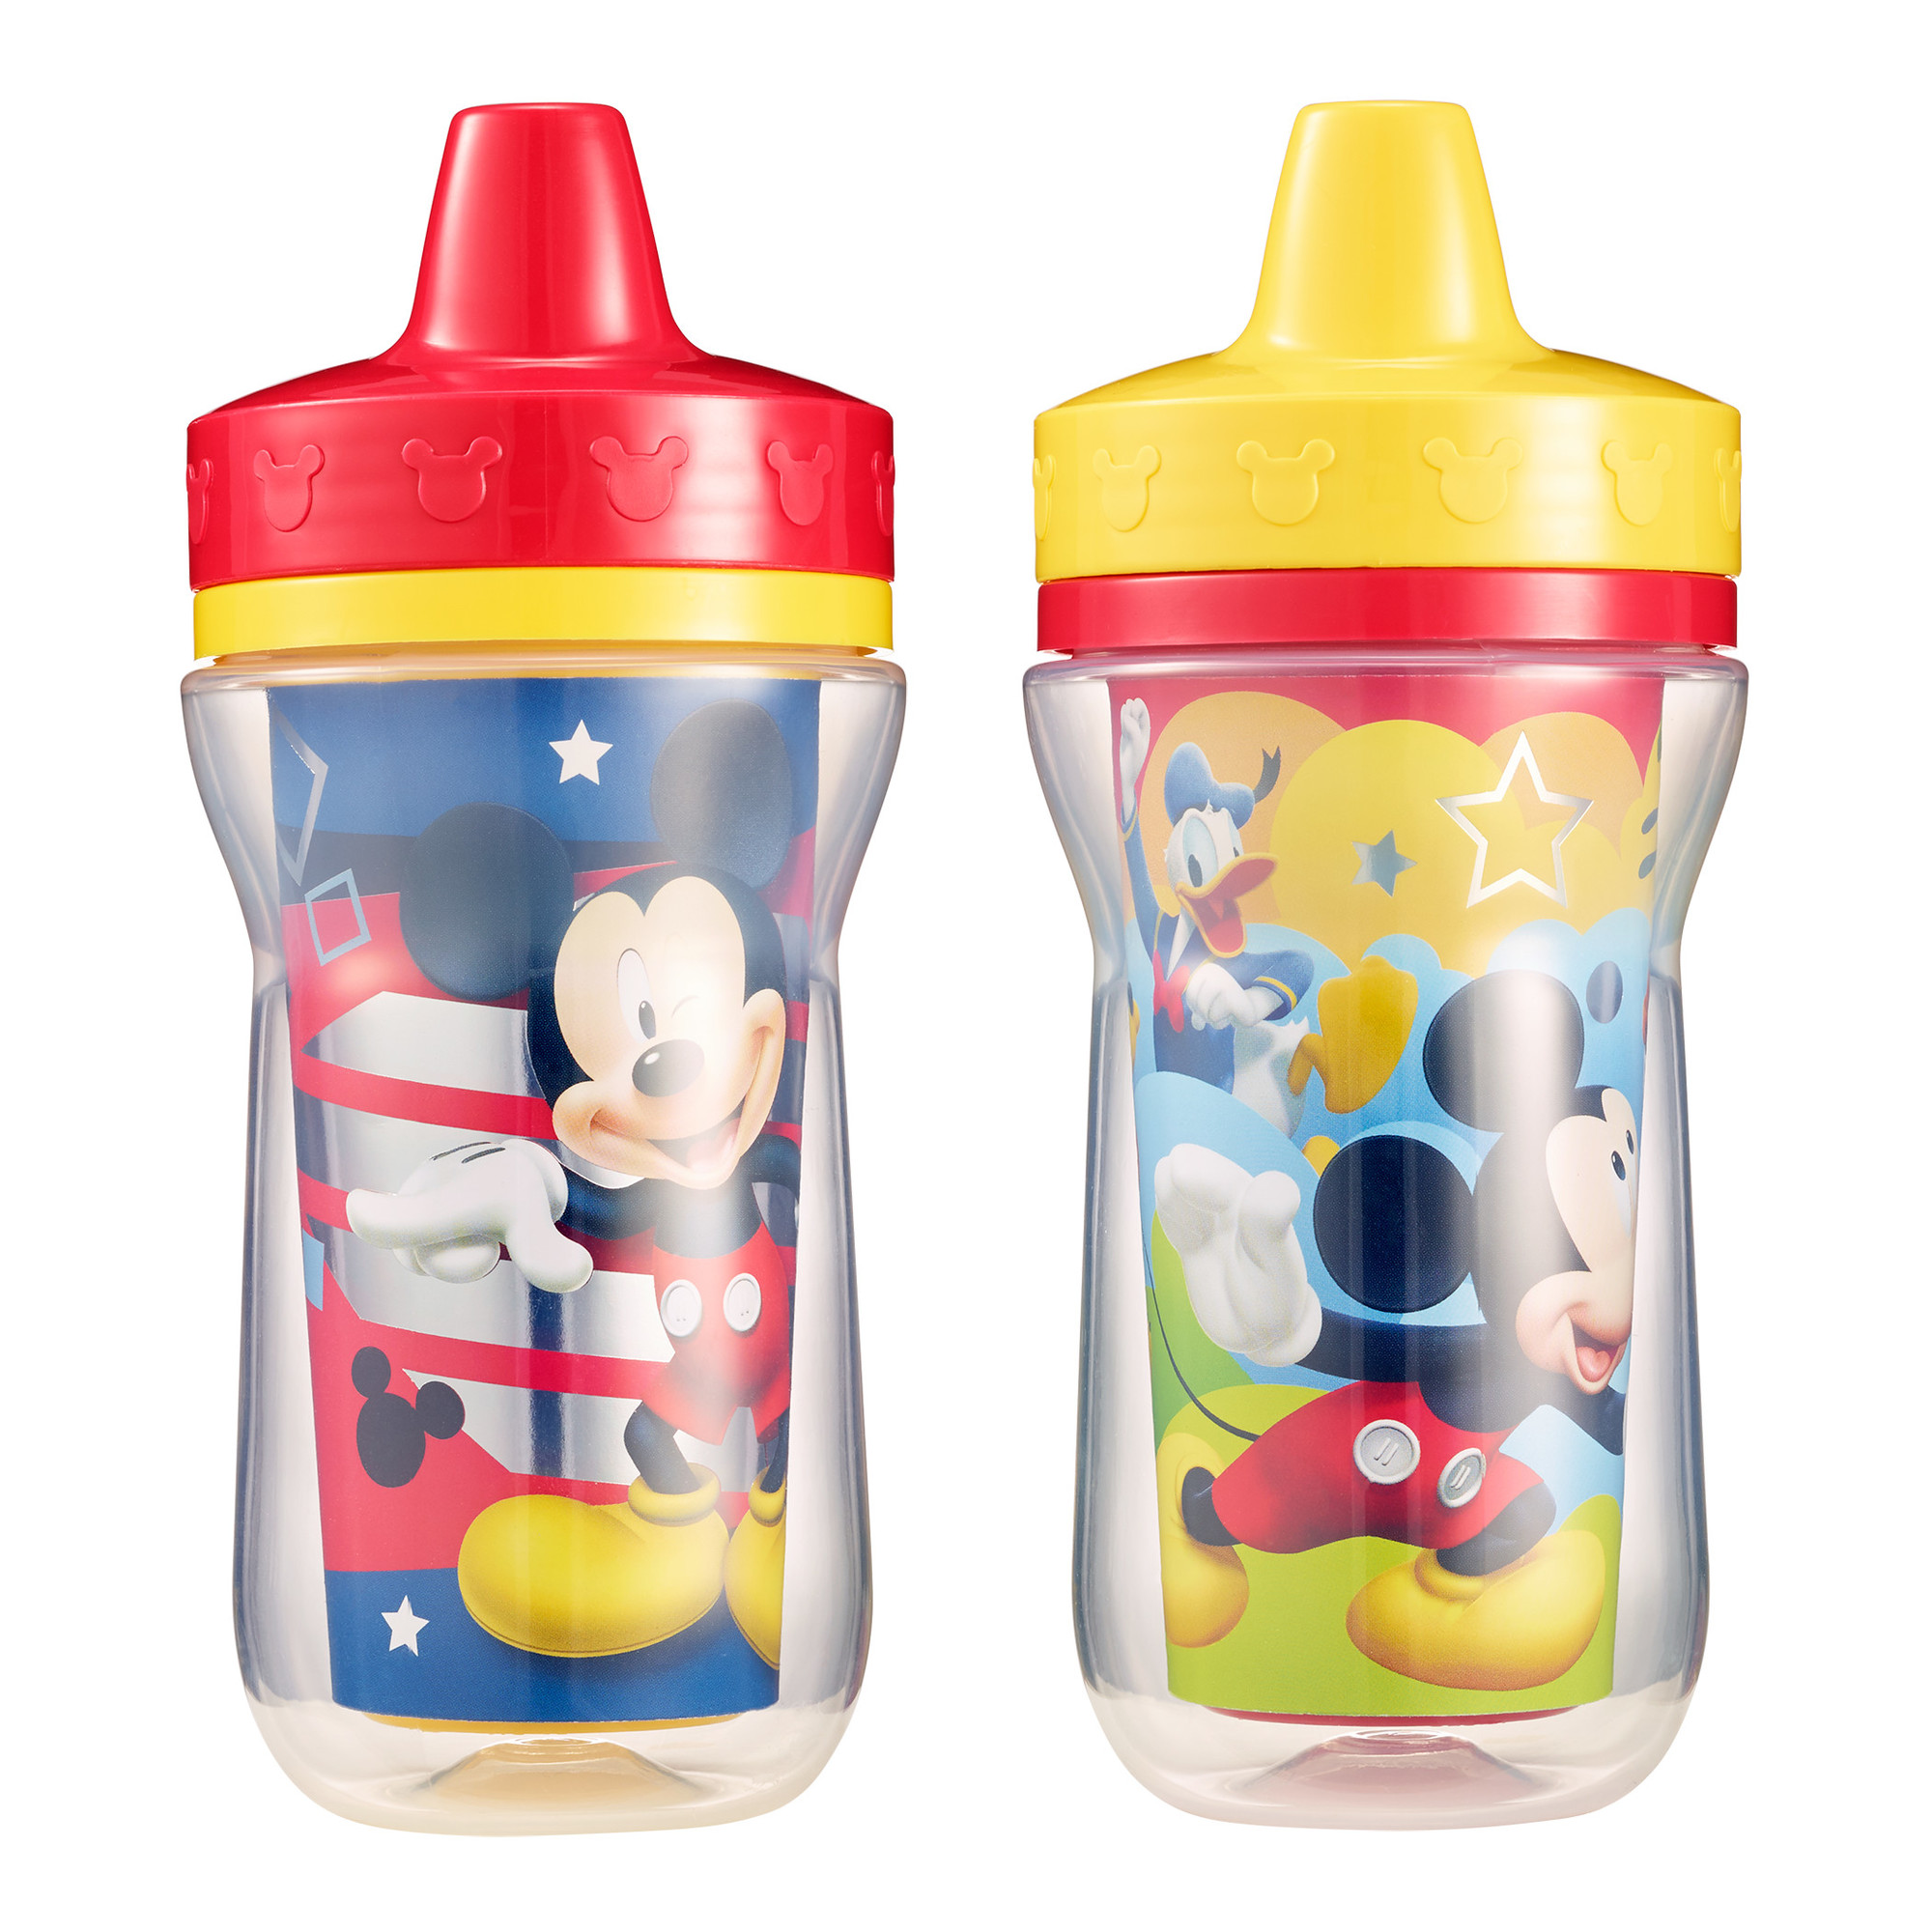 Disney Mickey Mouse Insulated Hard Spout Sippy Cups, 9 Oz, 2 Pk by The First Years